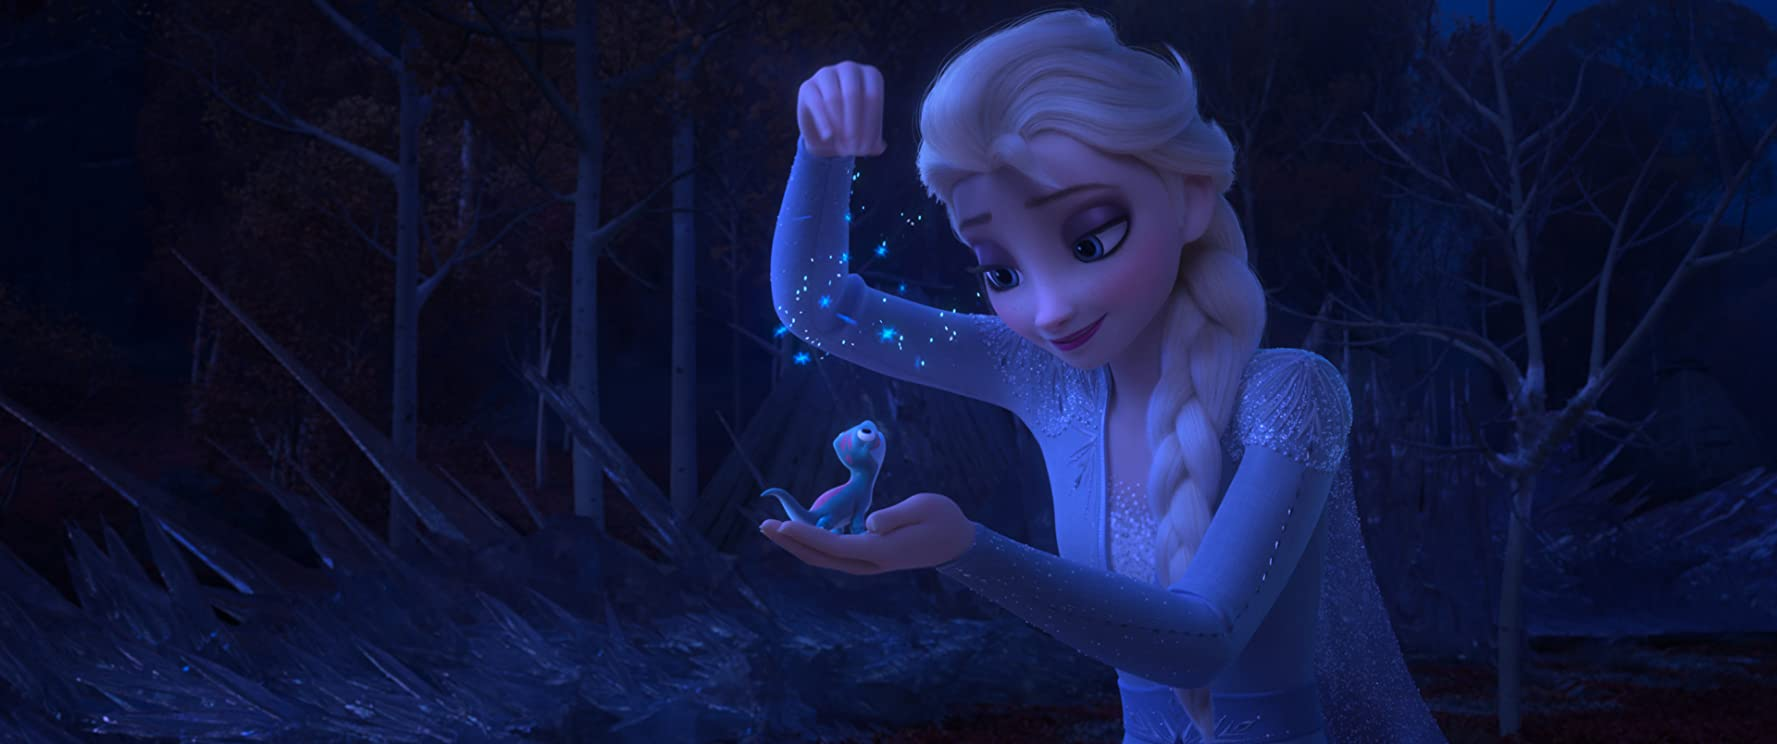 Idina Menzel in Frozen II (2019)